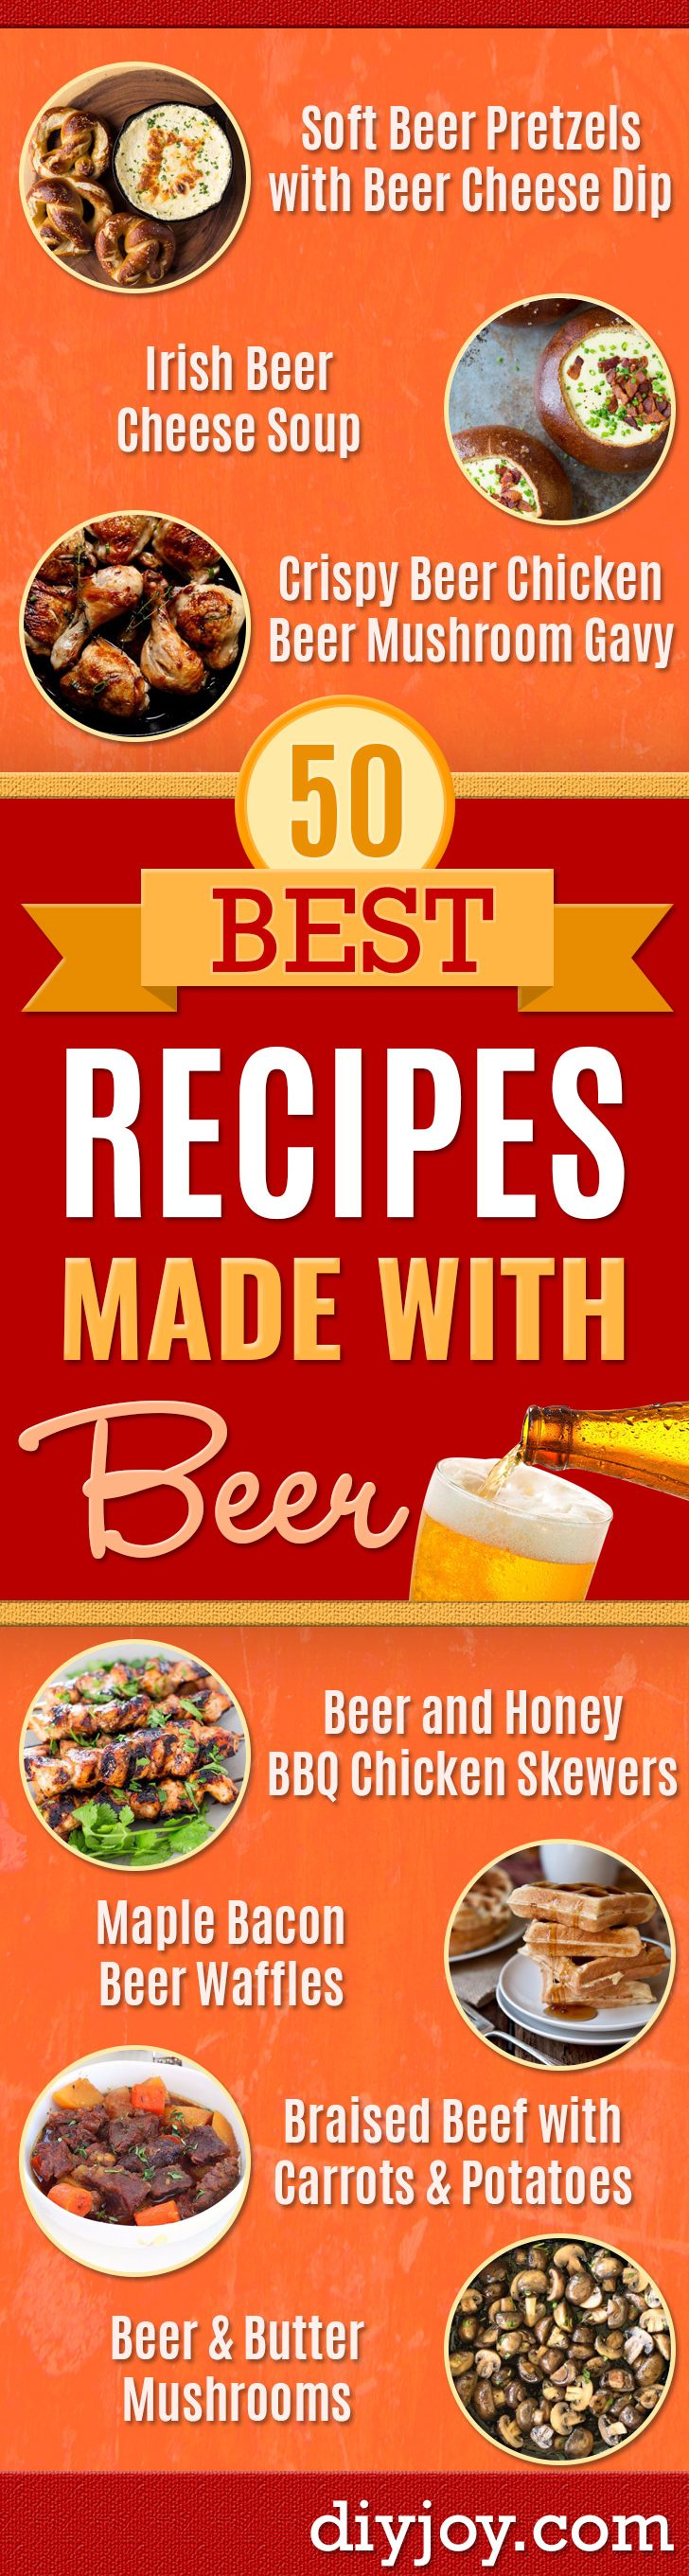 Best Recipes Made With Beer - Easy Dinner, Lunch and Snack Recipe Ideas Made With Beer - Food for the Slow Cooker and Crockpot, Meat and Chicken Dishes, Appetizers, Homemade Pretzels, Summer BBQ Sauces and Party Food Ideas